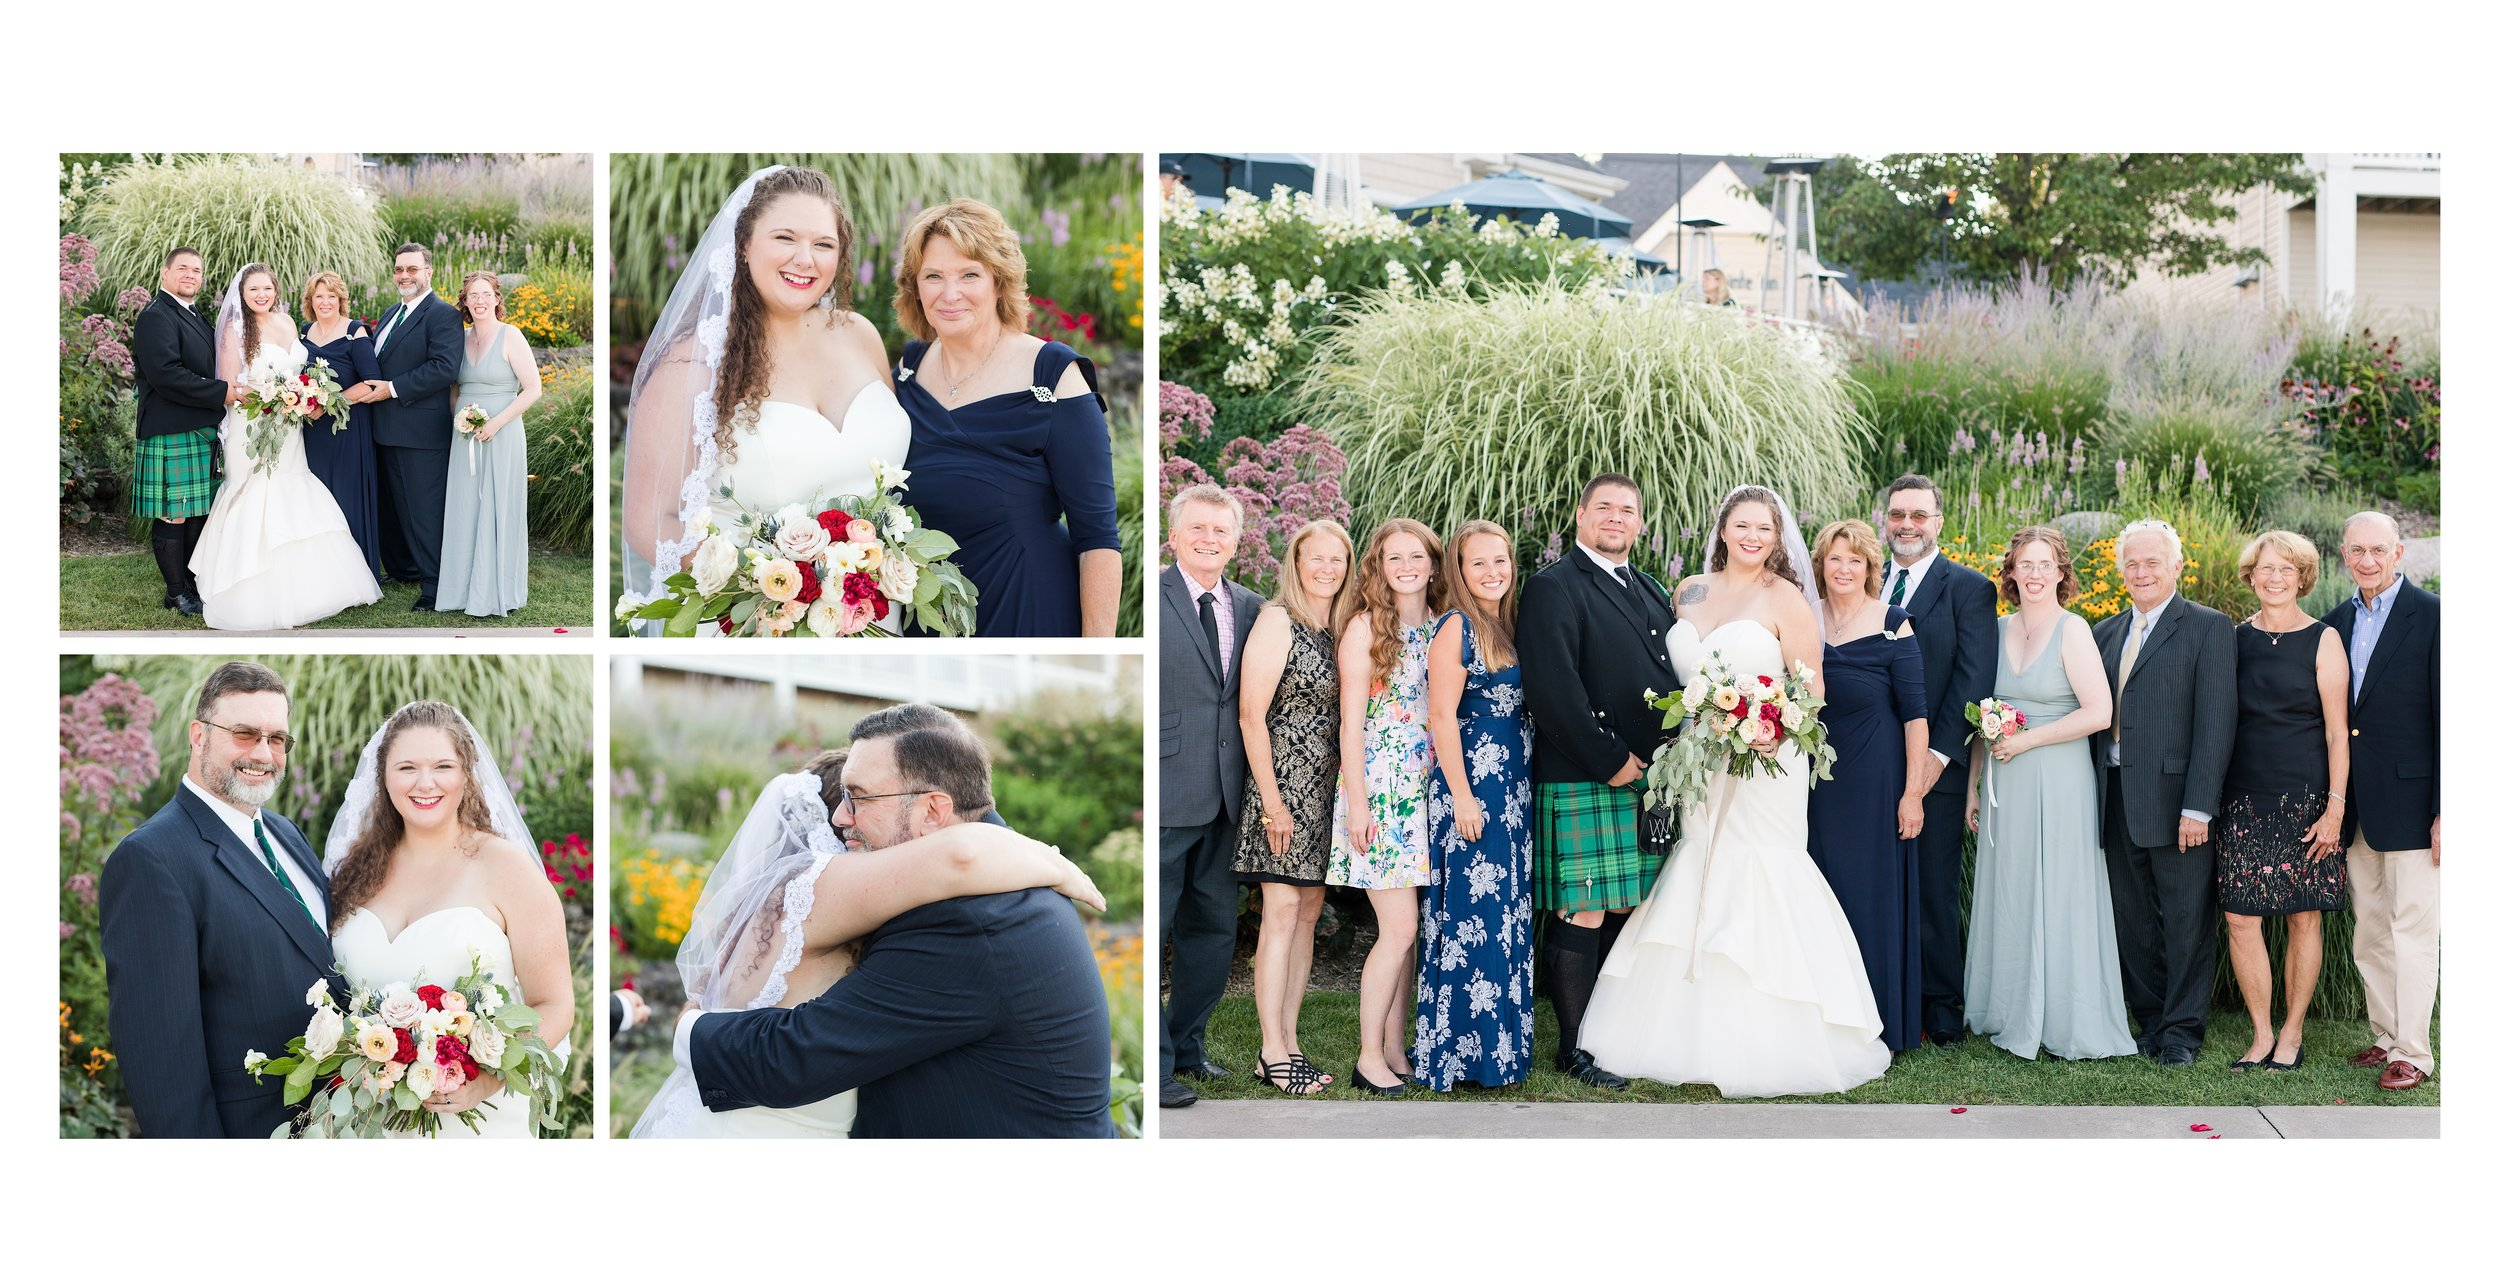 Our_Wedding_Album_12x12_-_30_pages_25.jpg